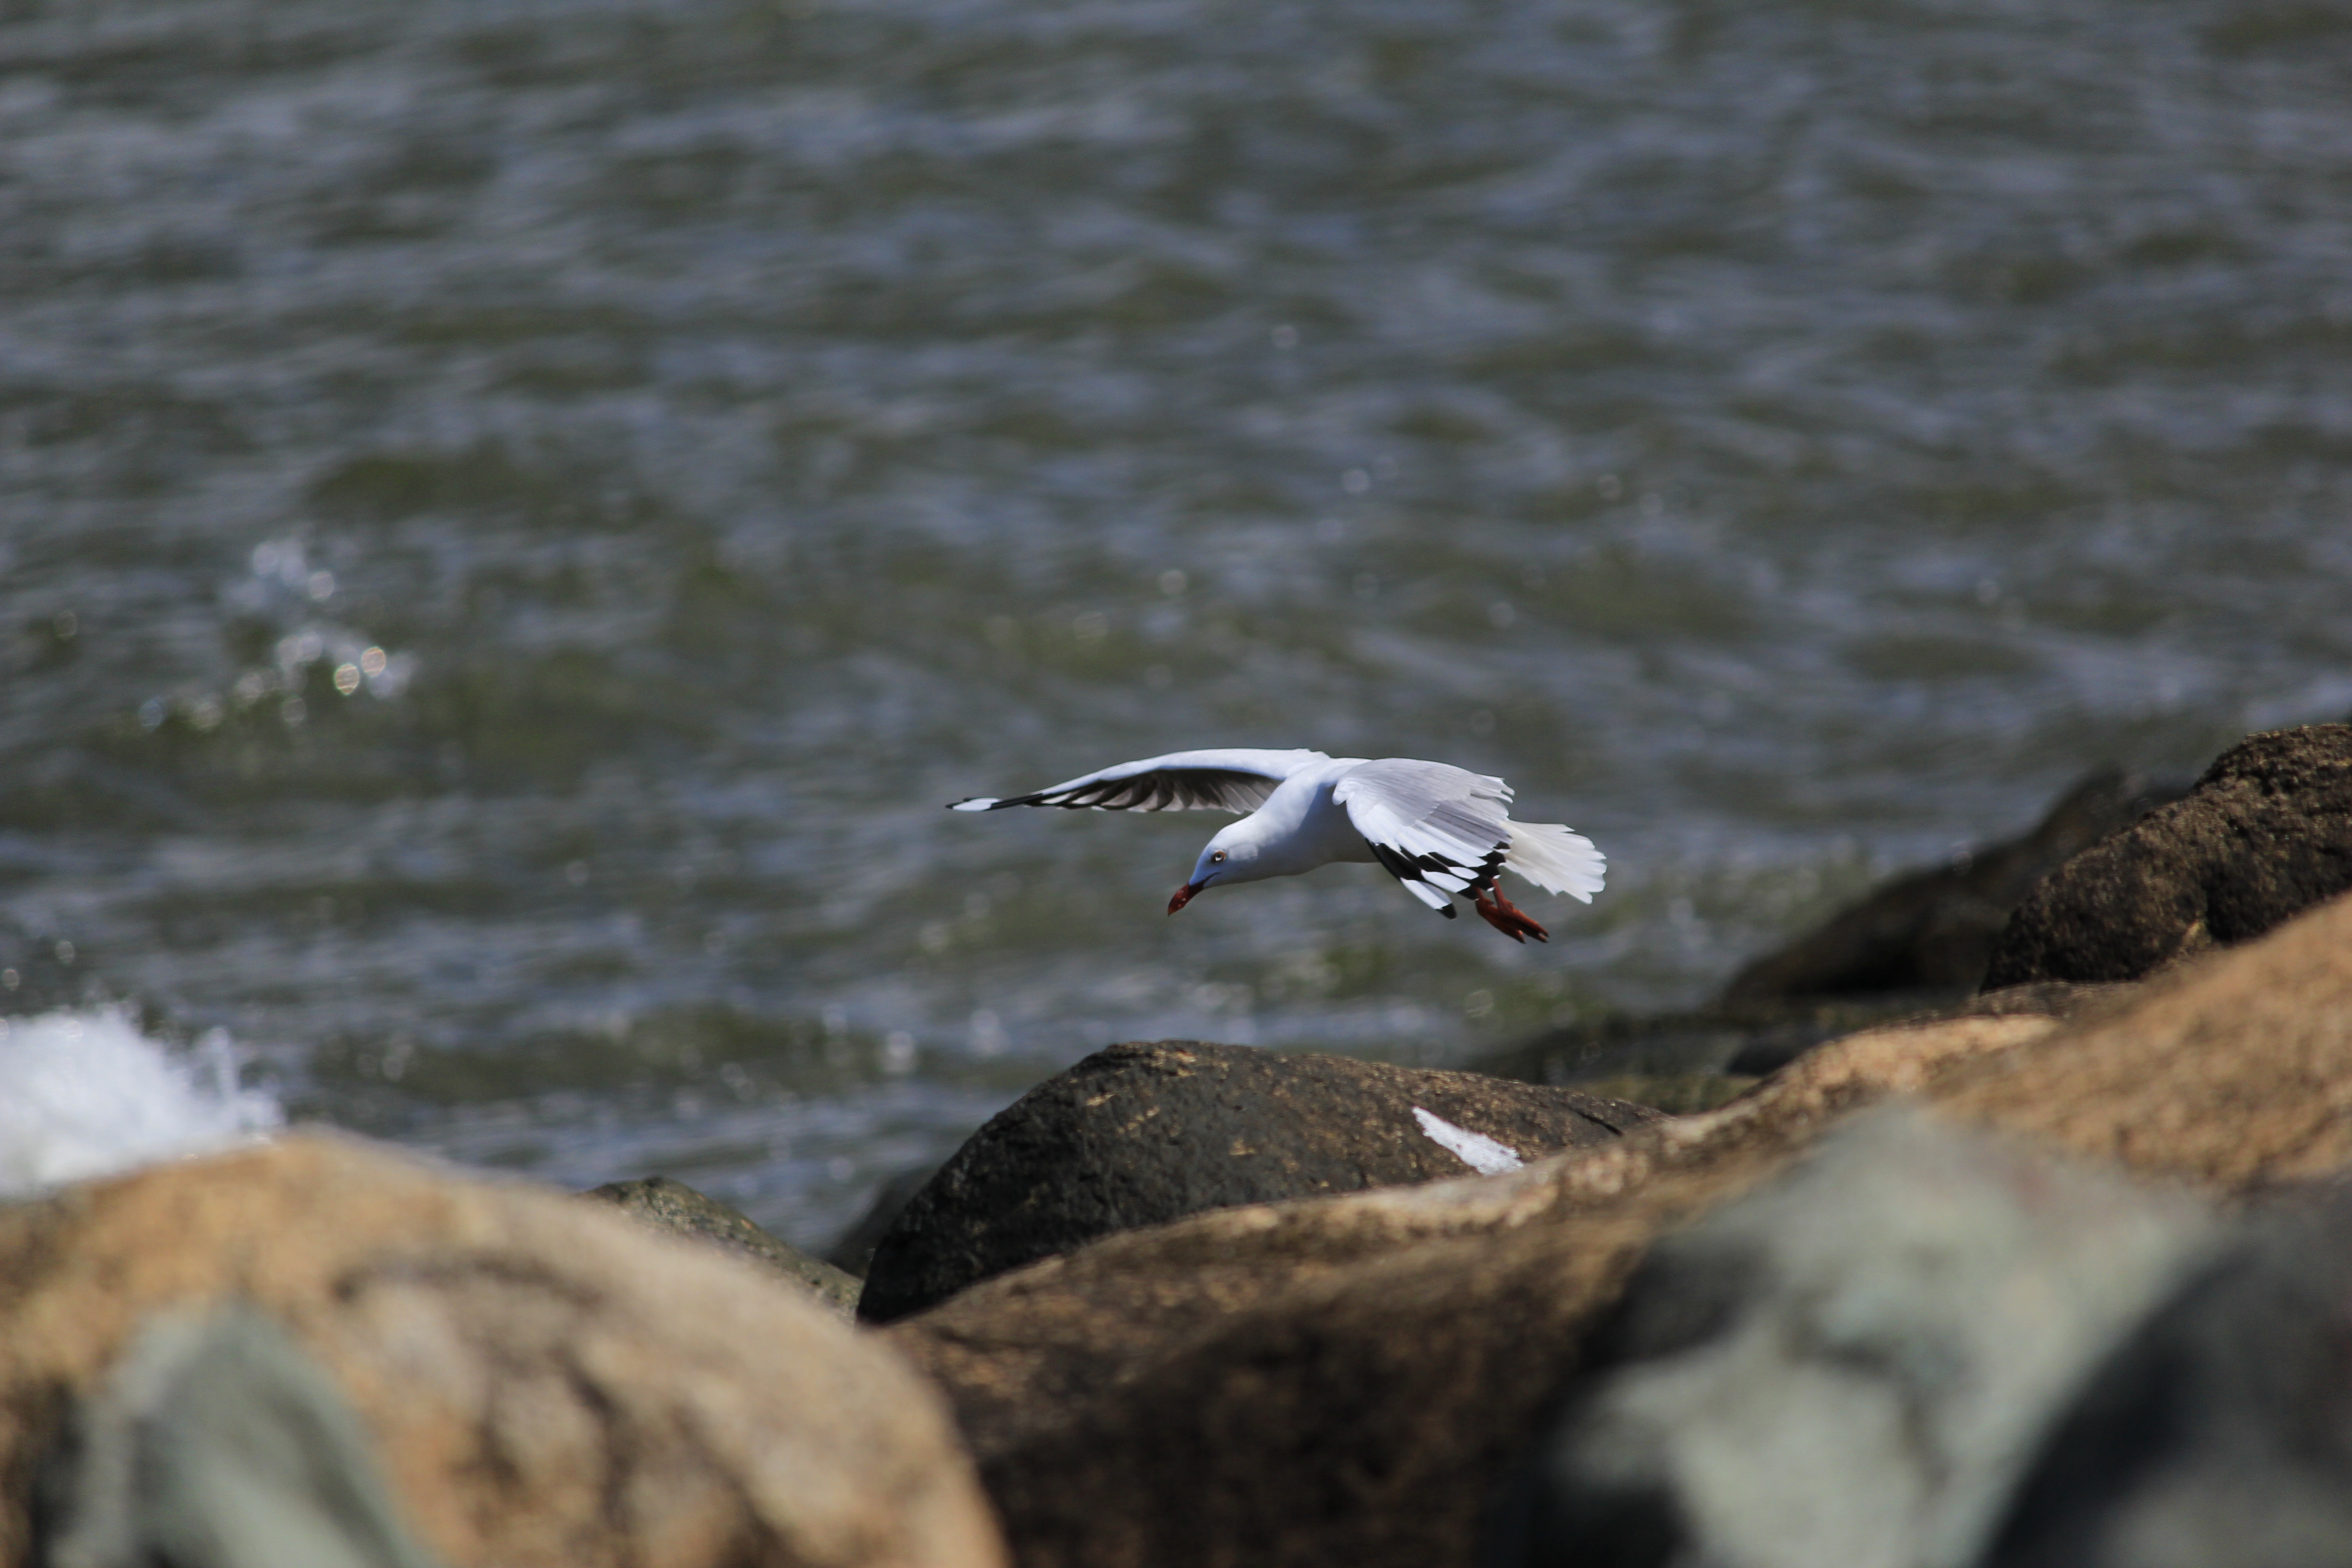 112075 download wallpaper Animals, Gull, Seagull, Bird, Flight, Sea, Stones screensavers and pictures for free